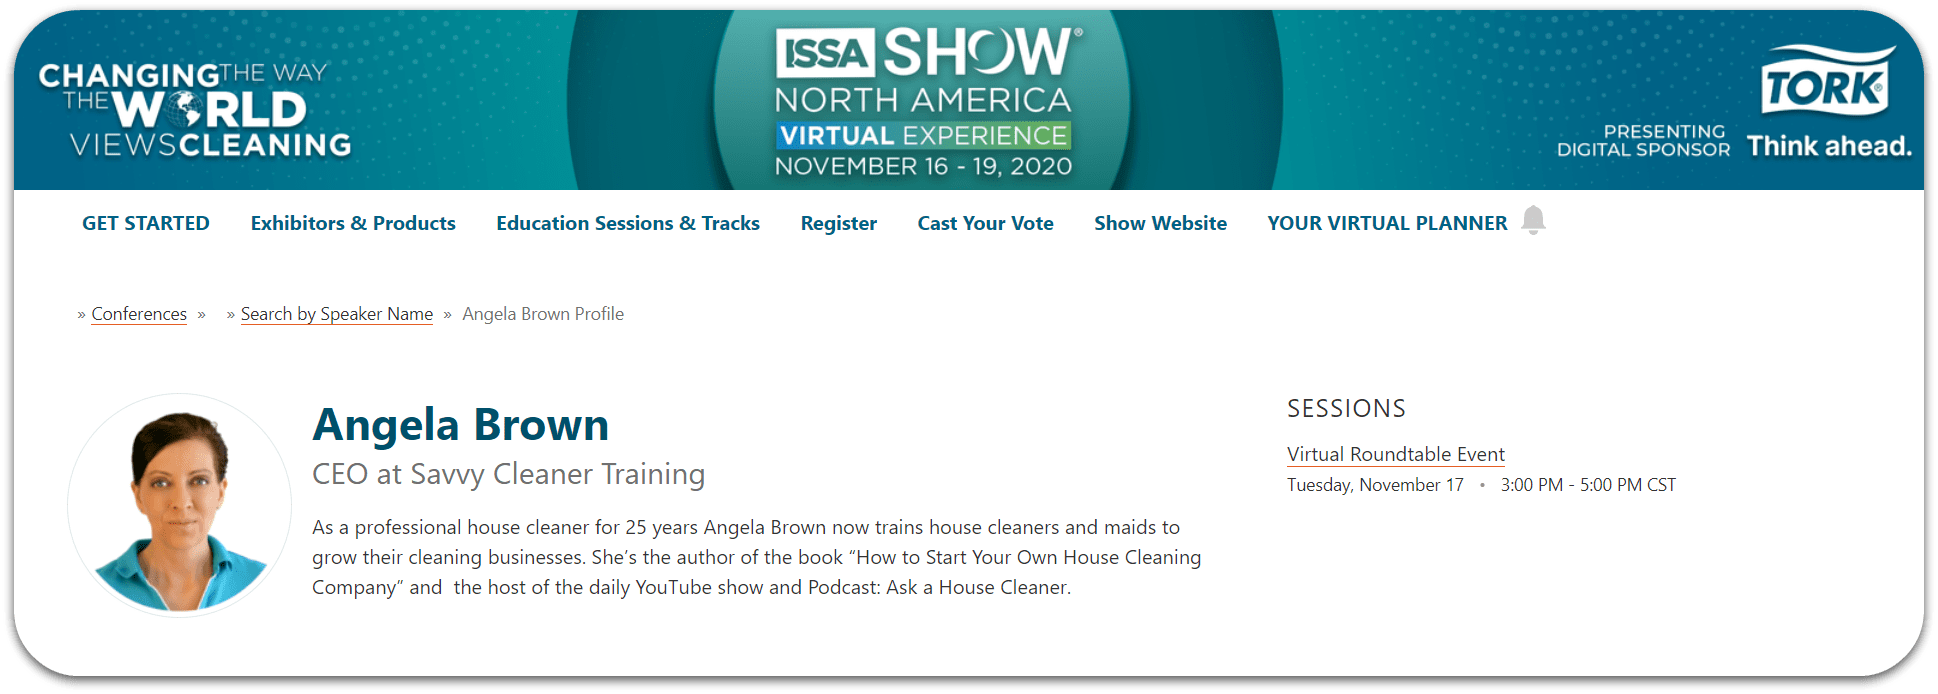 Angela Brown at the ISSA Virtual Show 2020